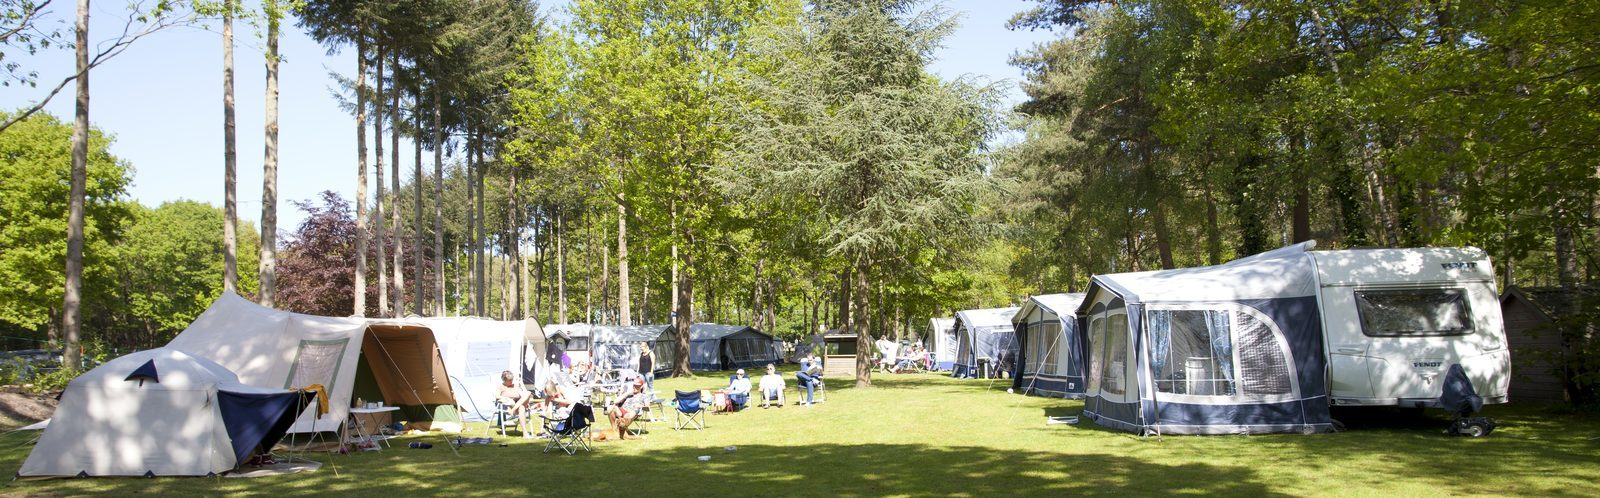 Campingurlaub in Holland